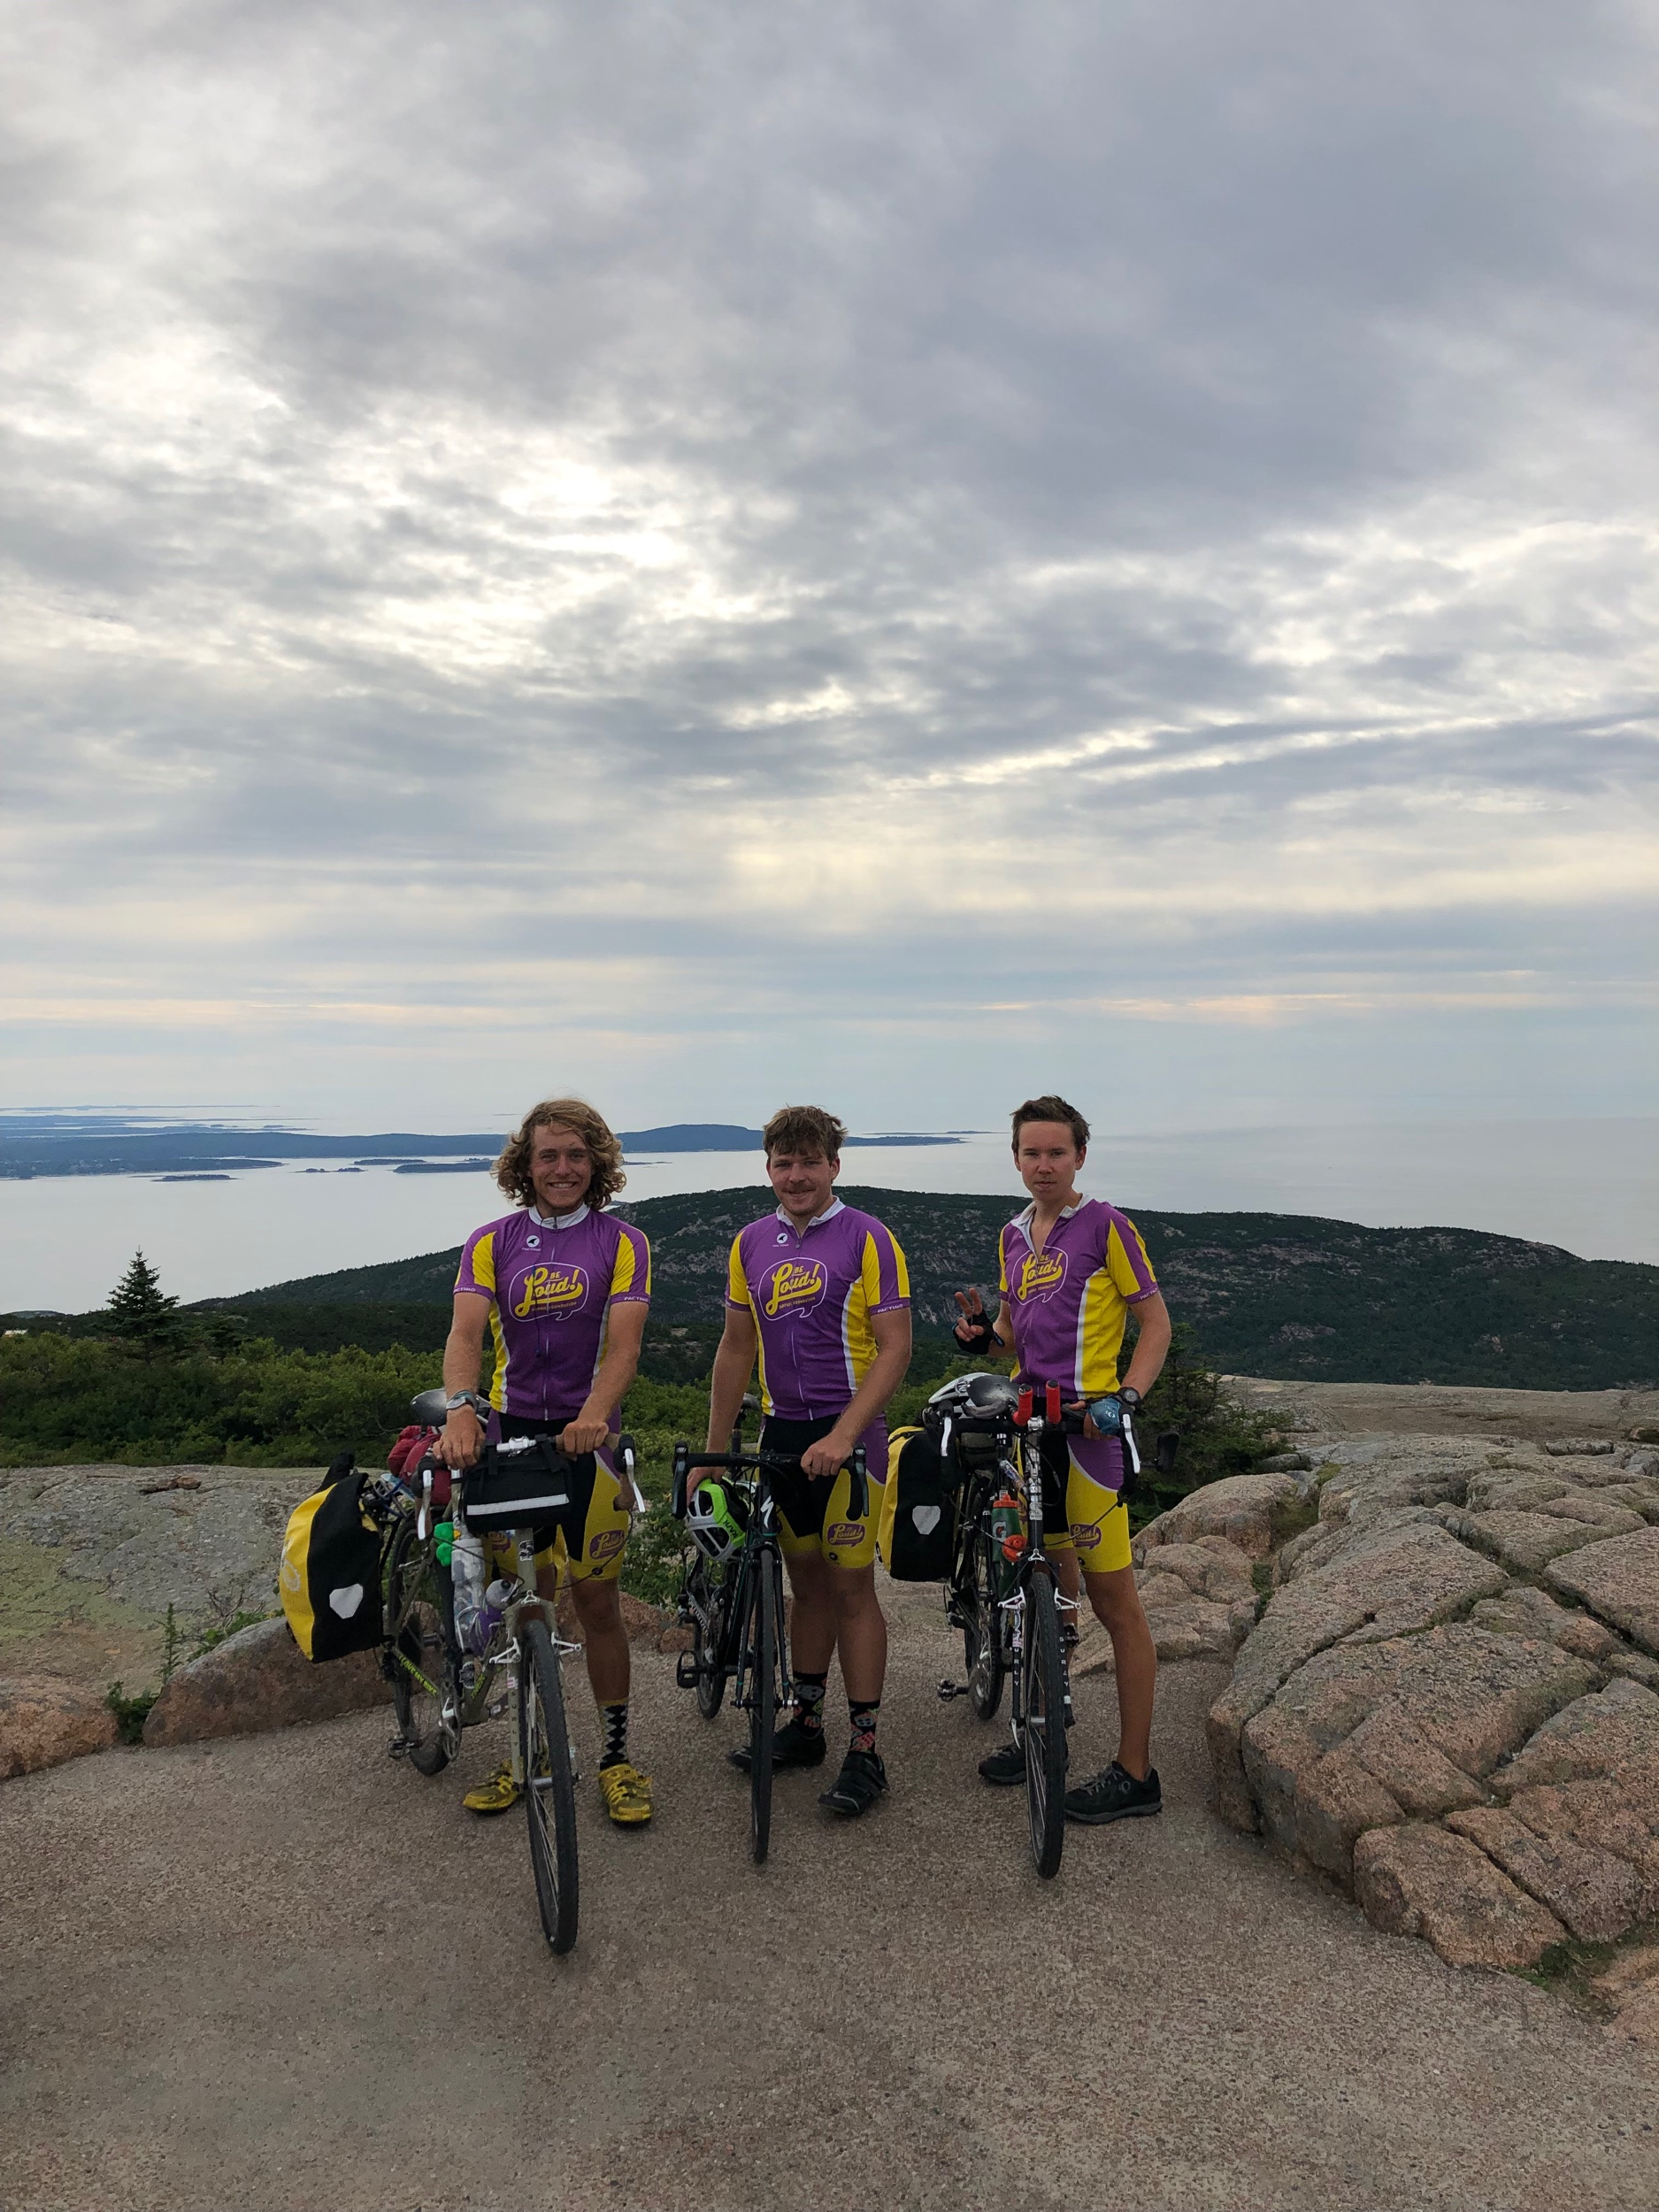 Cadillac Mountain, 1,529 ft